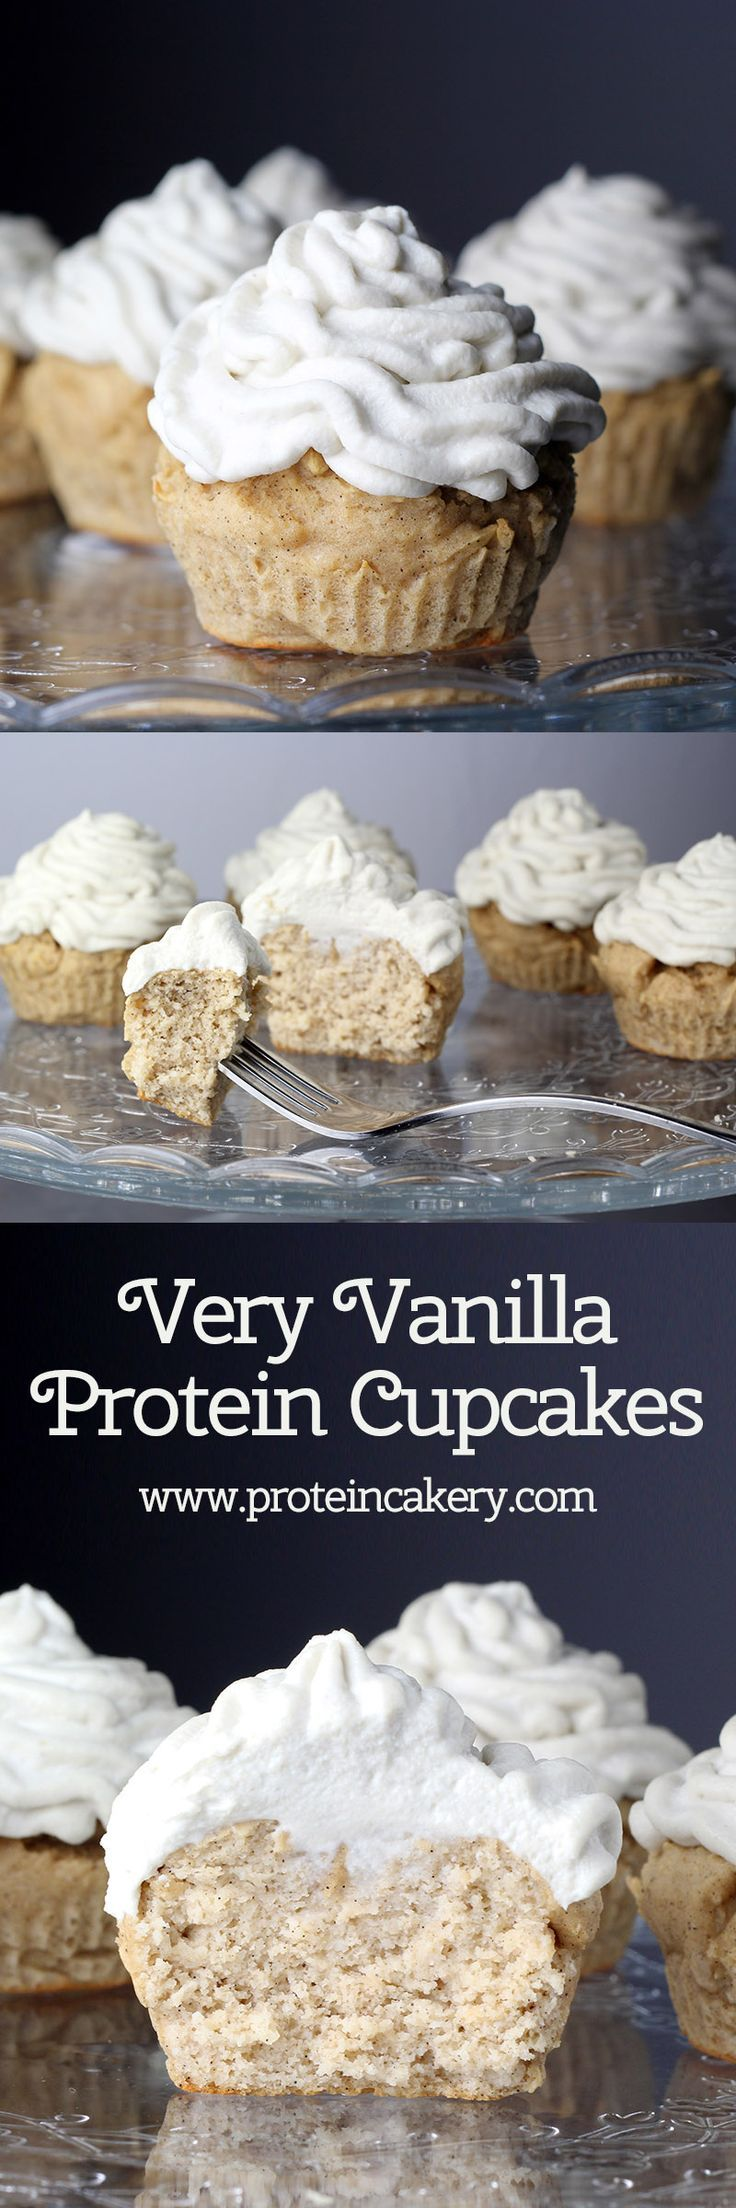 Very Vanilla Protein Cupcakes - high protein, low carb, gluten free